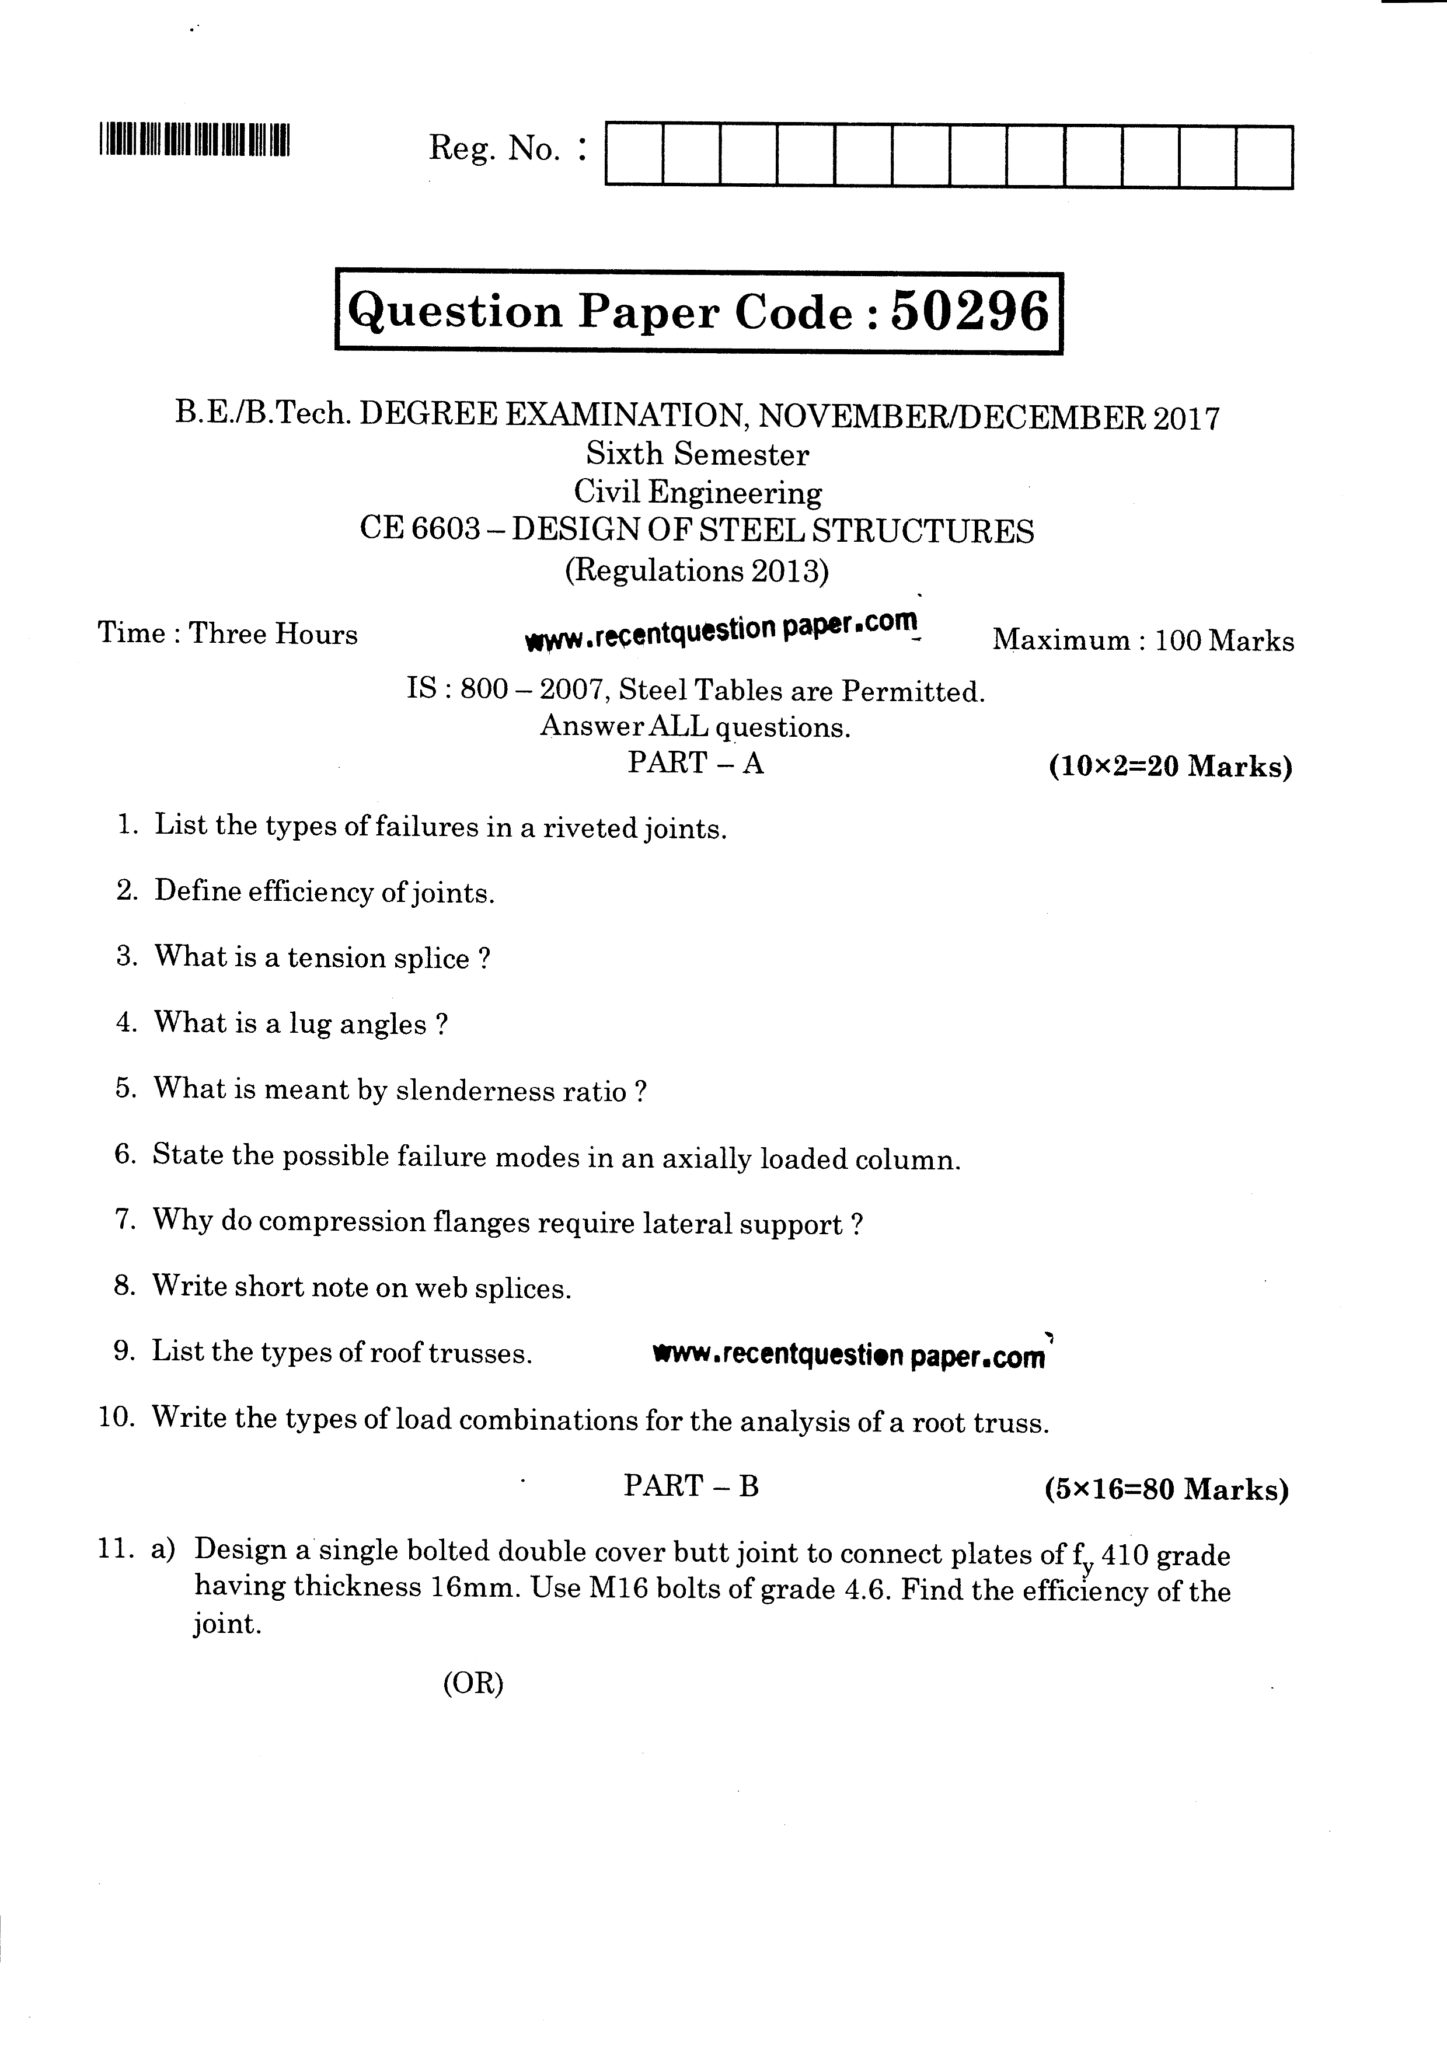 CE6603 Design Of Steel Structures Question Paper Nov/Dec 2017